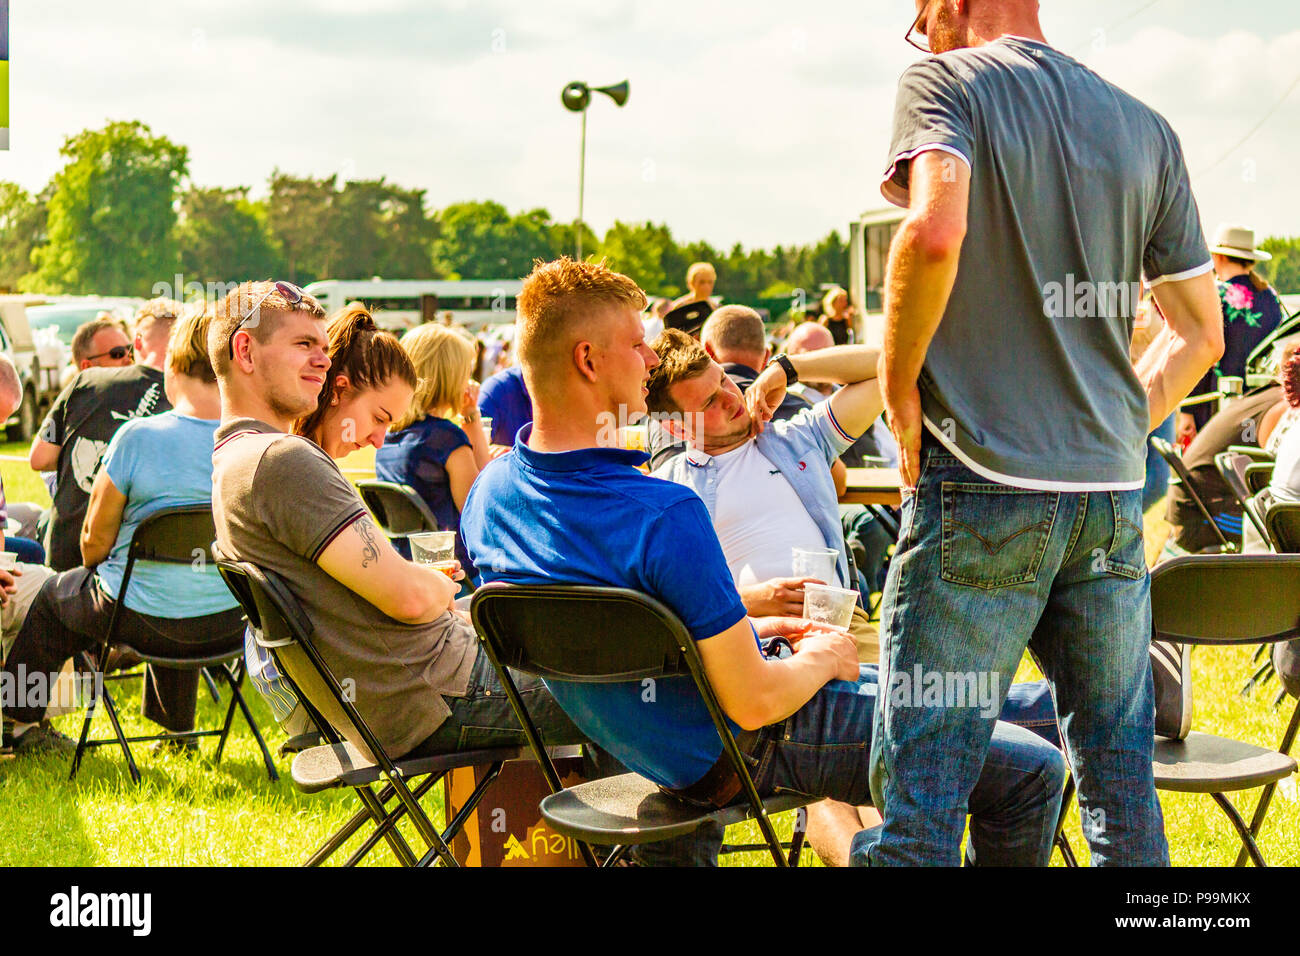 Group of young men drinking outside in the sunshine at the Northumberland County Show, May 2018. - Stock Image